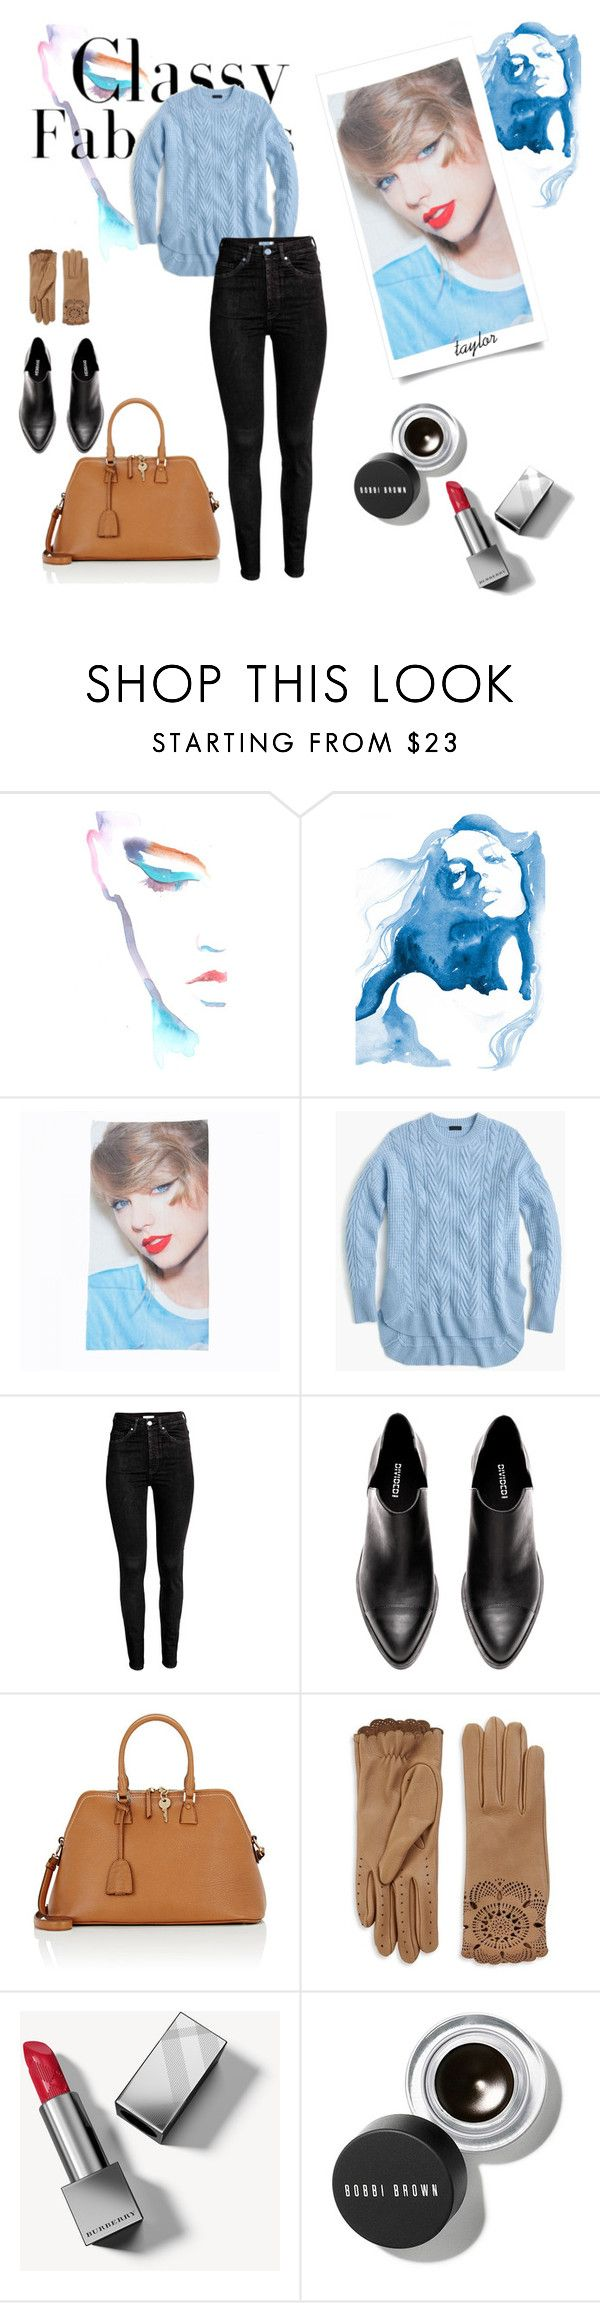 """dressing taylor sift"" by style-by-j on Polyvore featuring WALL, J.Crew, Maison Margiela, Burberry and Bobbi Brown Cosmetics"